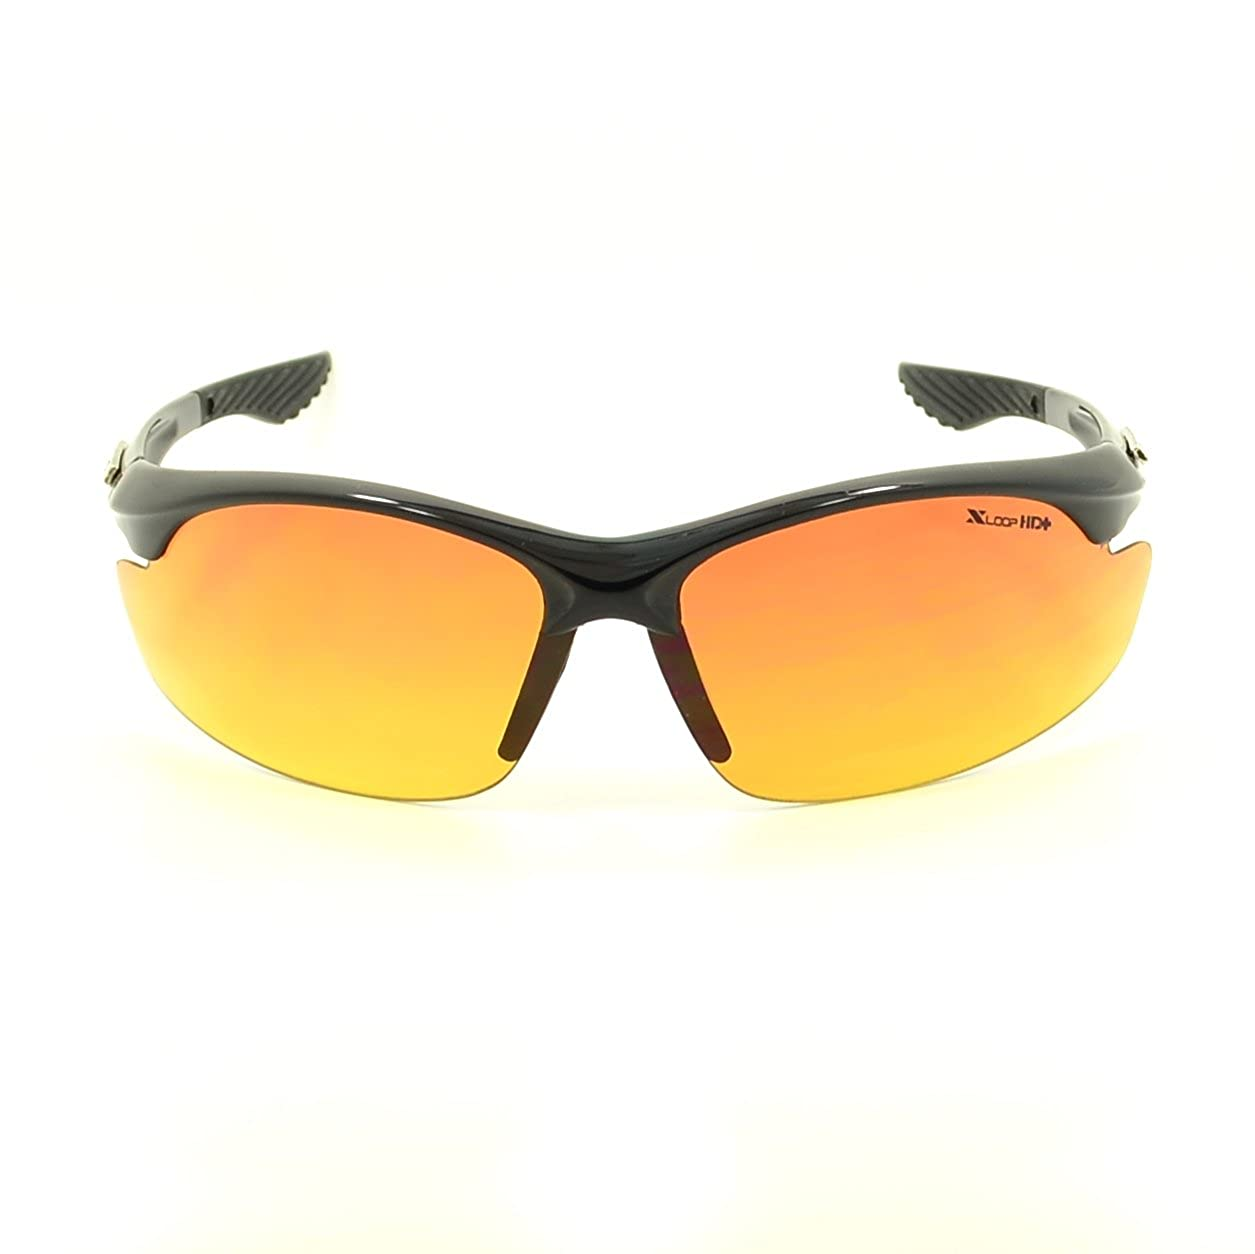 Xloop Mens Sports Hd Black Frame Sunglasses 69.85 MM Width Lens